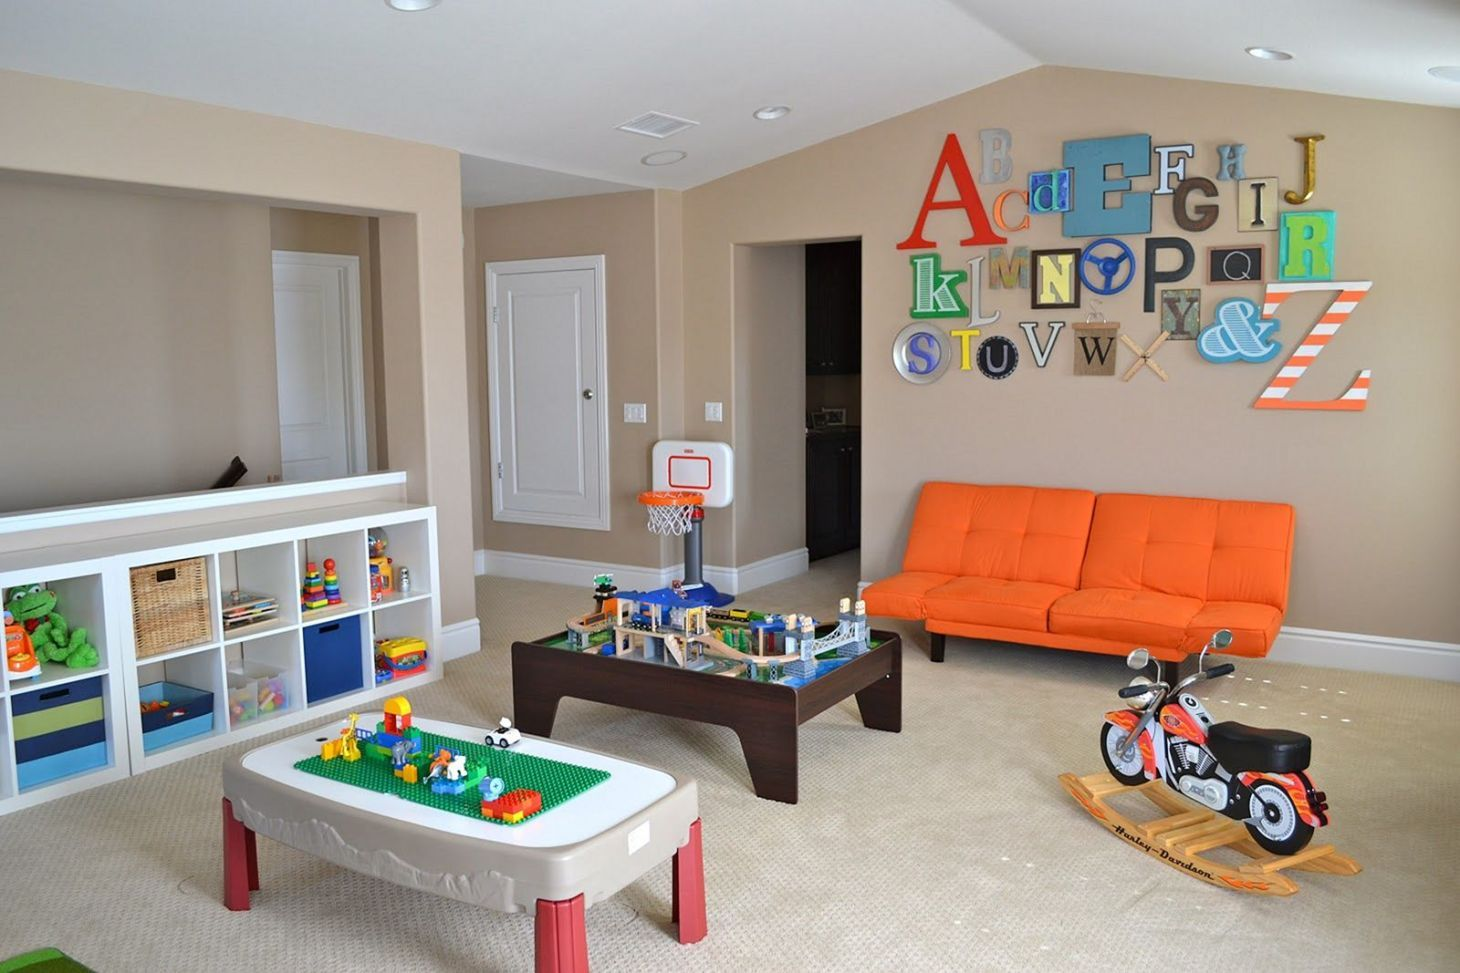 Top 25+ Kids Playroom Design With Beautiful Decor Ideas That Your Kids Will Love It images